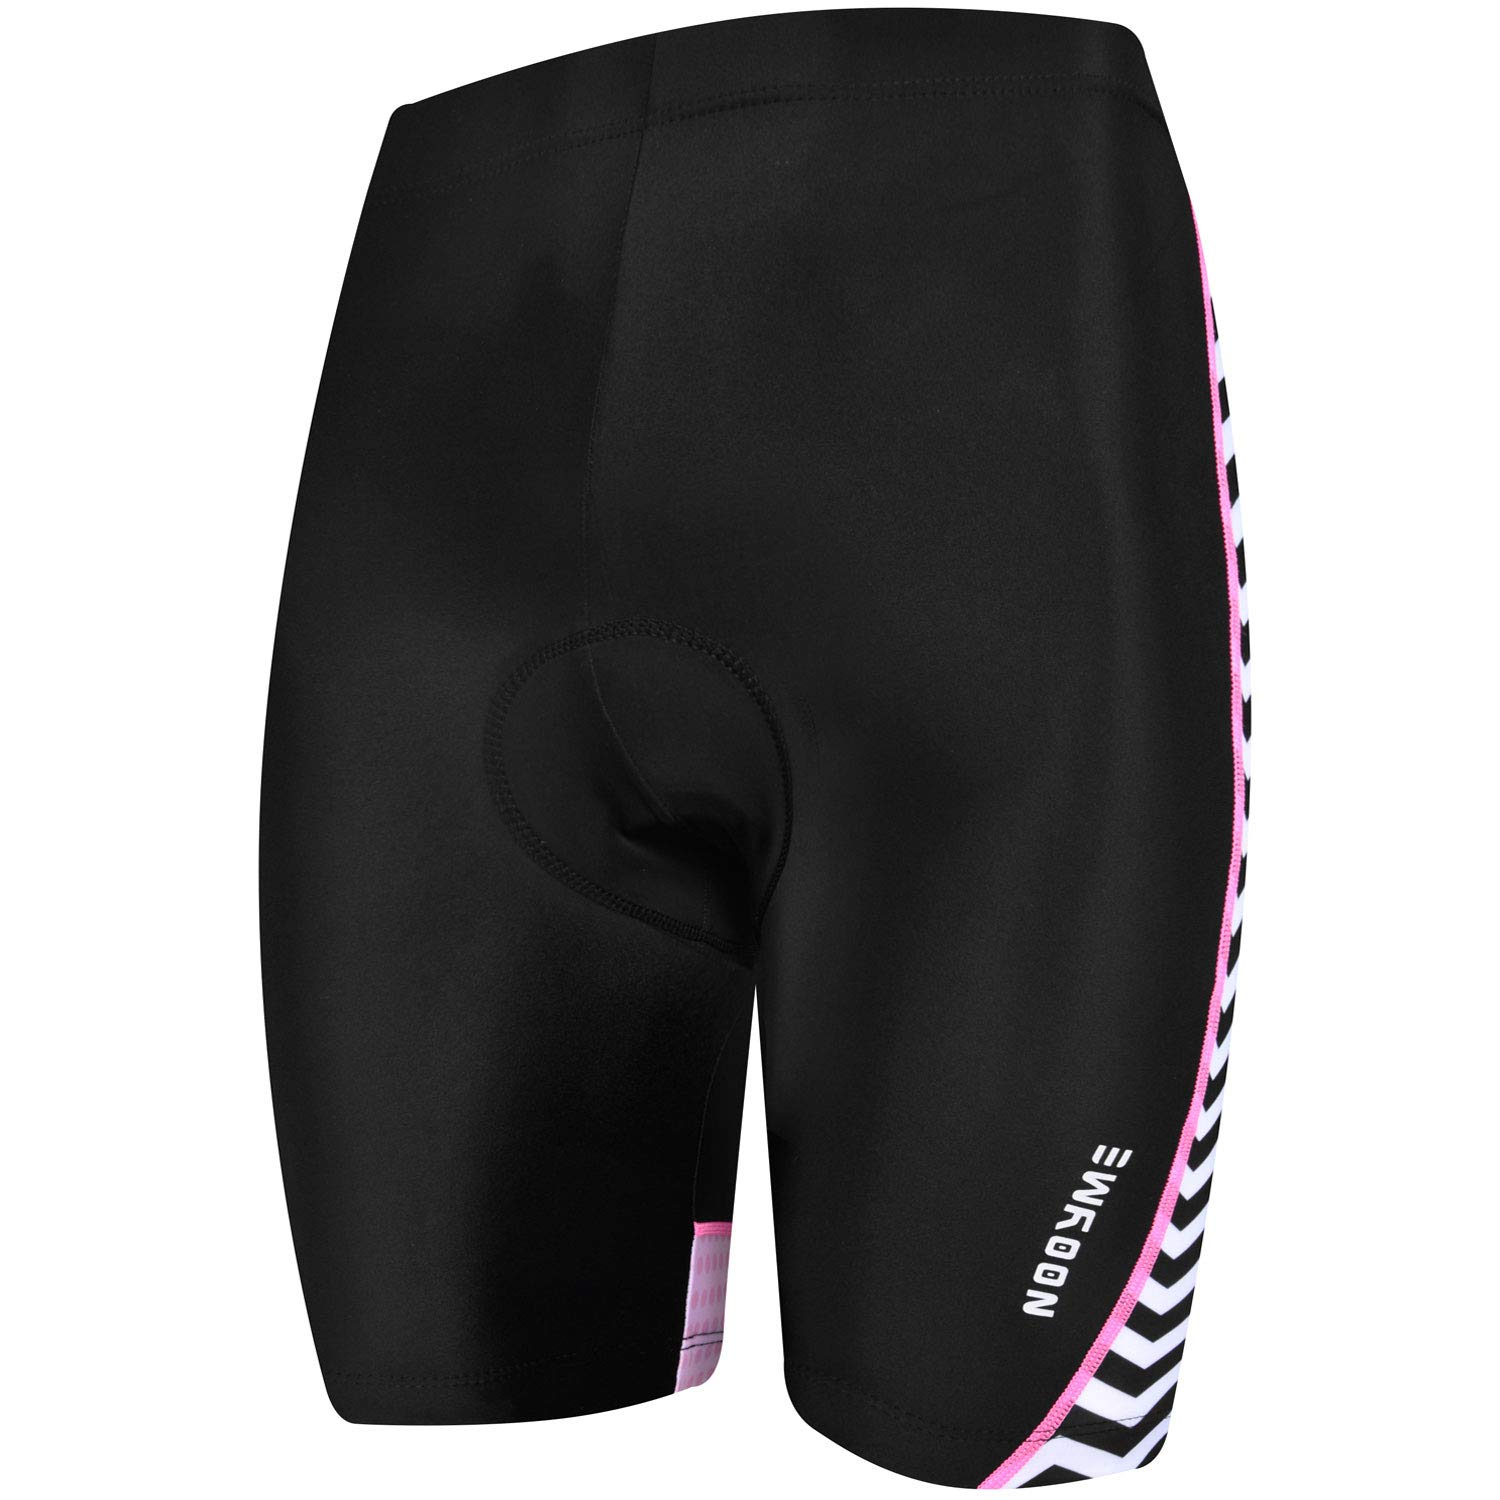 NOOYME Padded Bike Shorts Women 3D Padding Bicycle Womens Cycling Shorts (Medium, Green-Pink) by NOOYME